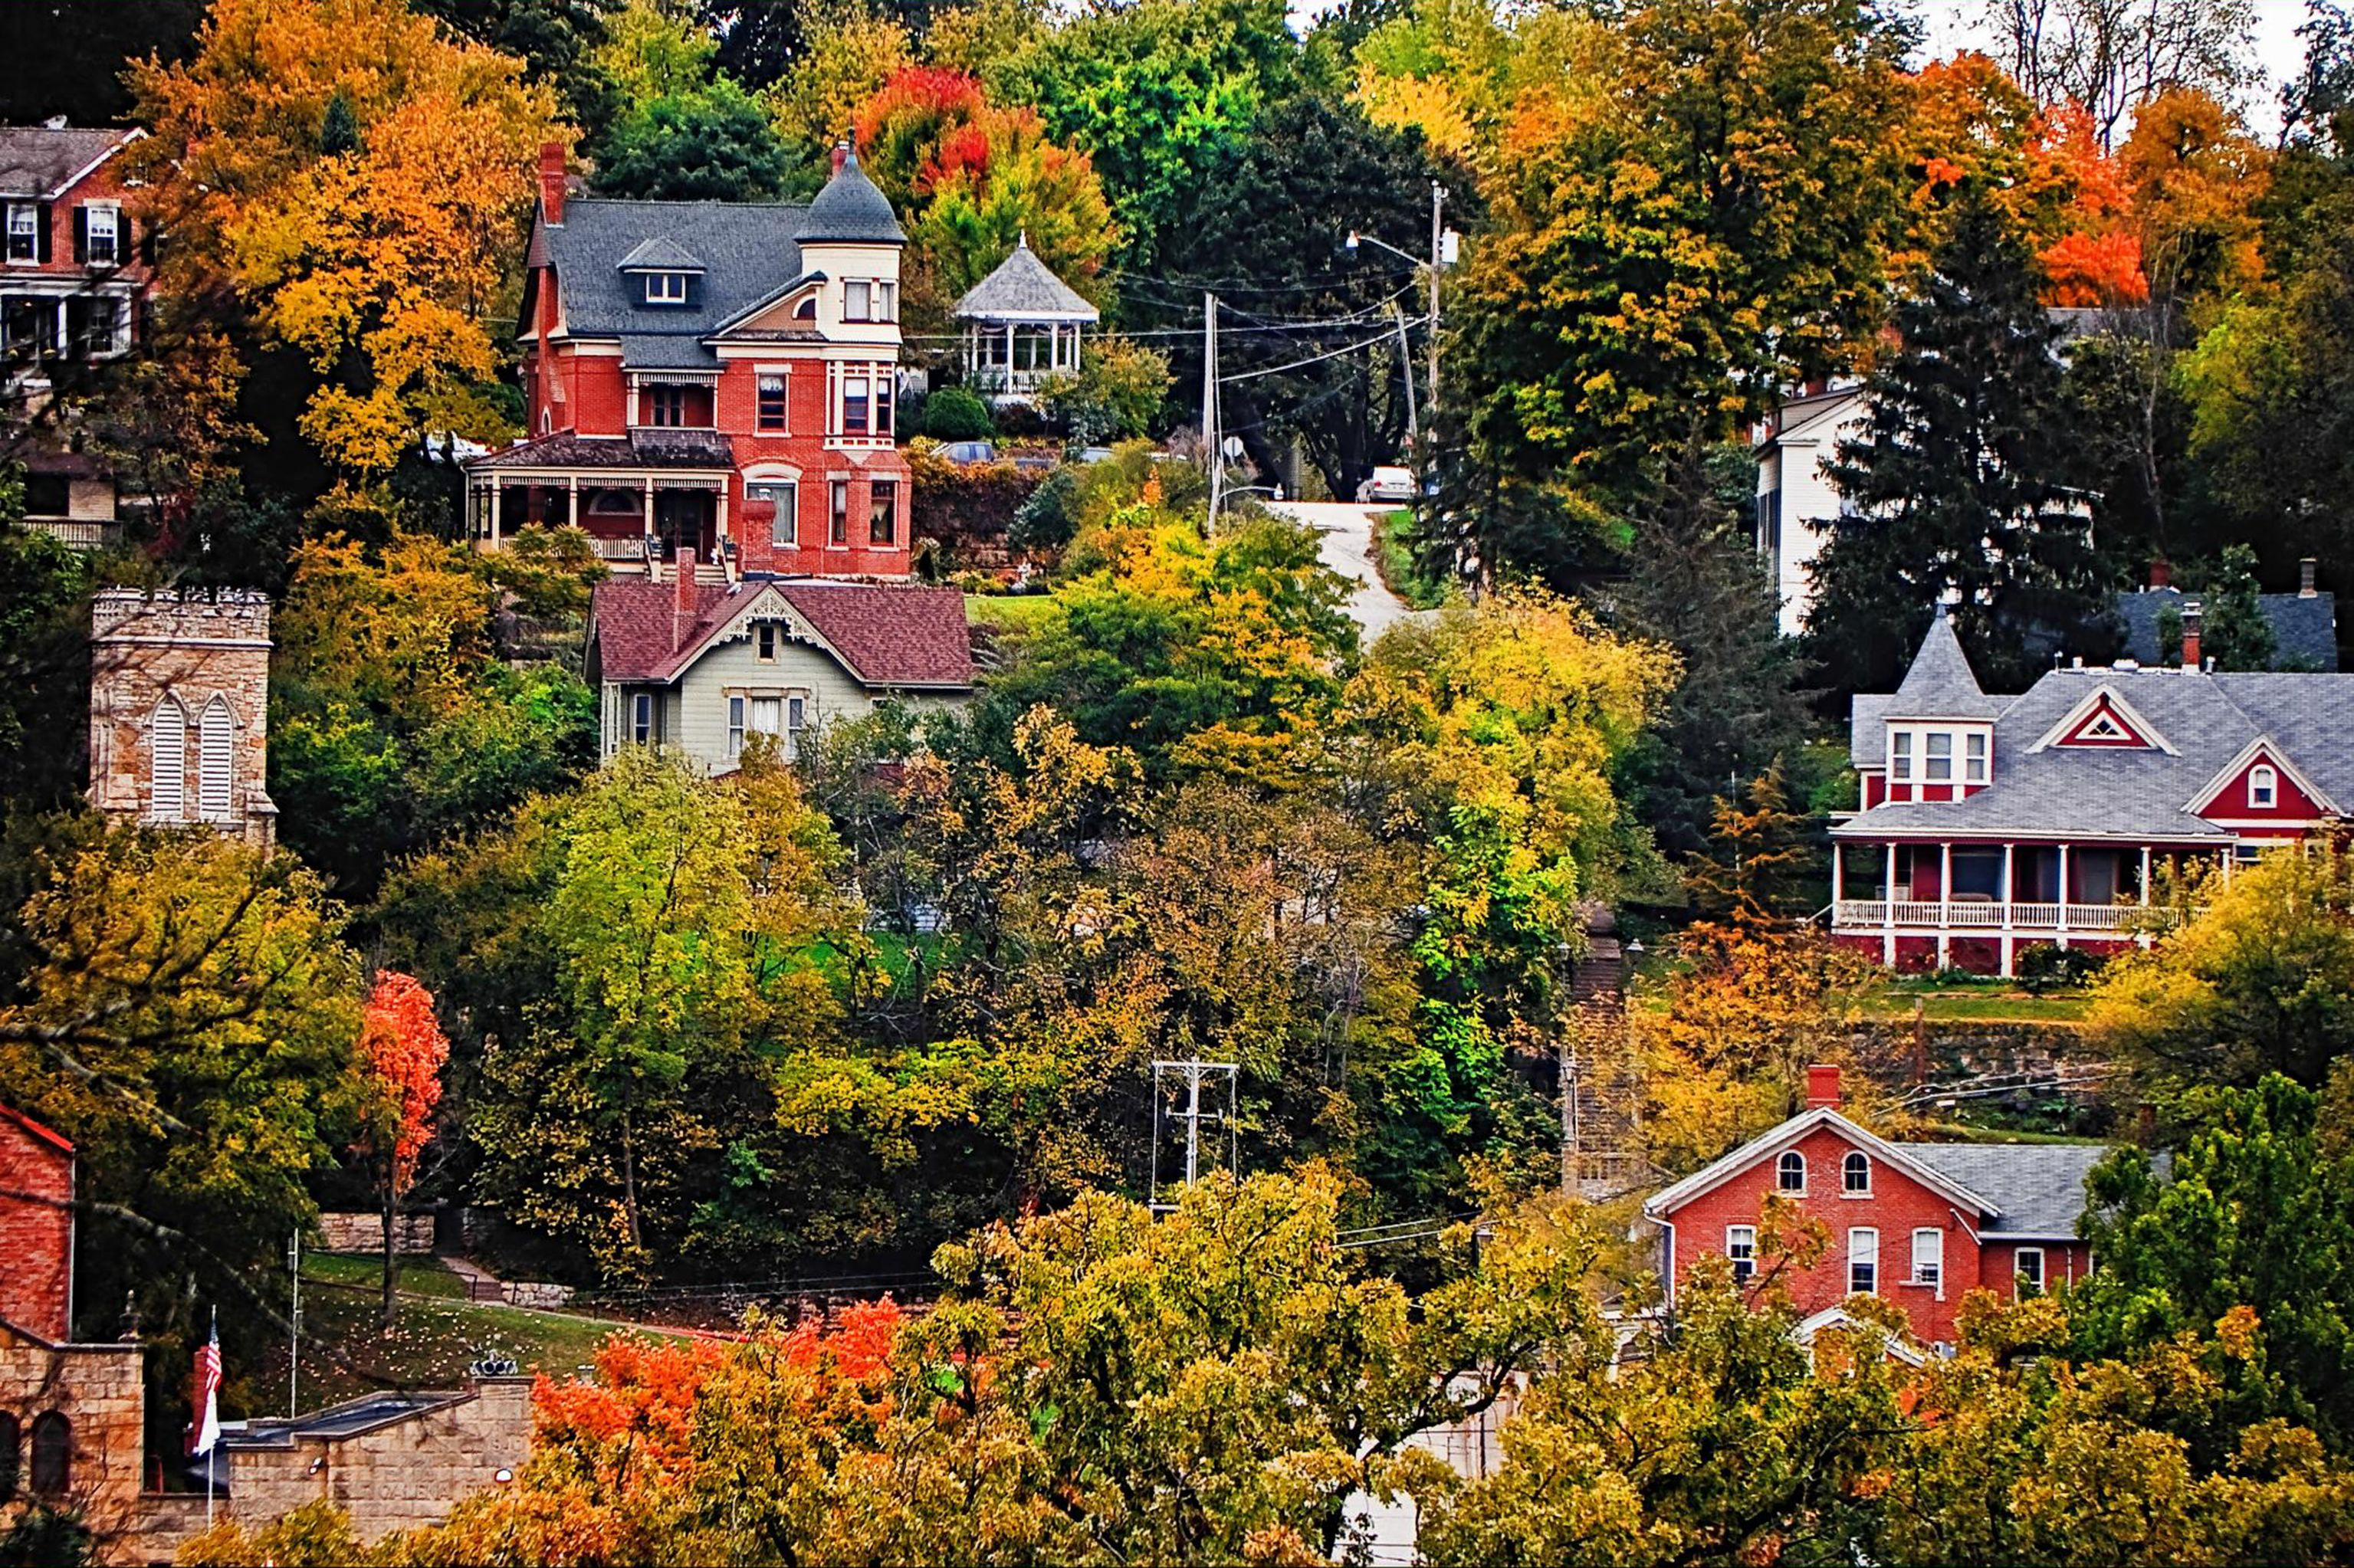 The 50 most beautiful small towns in america civil wars Best small town to live